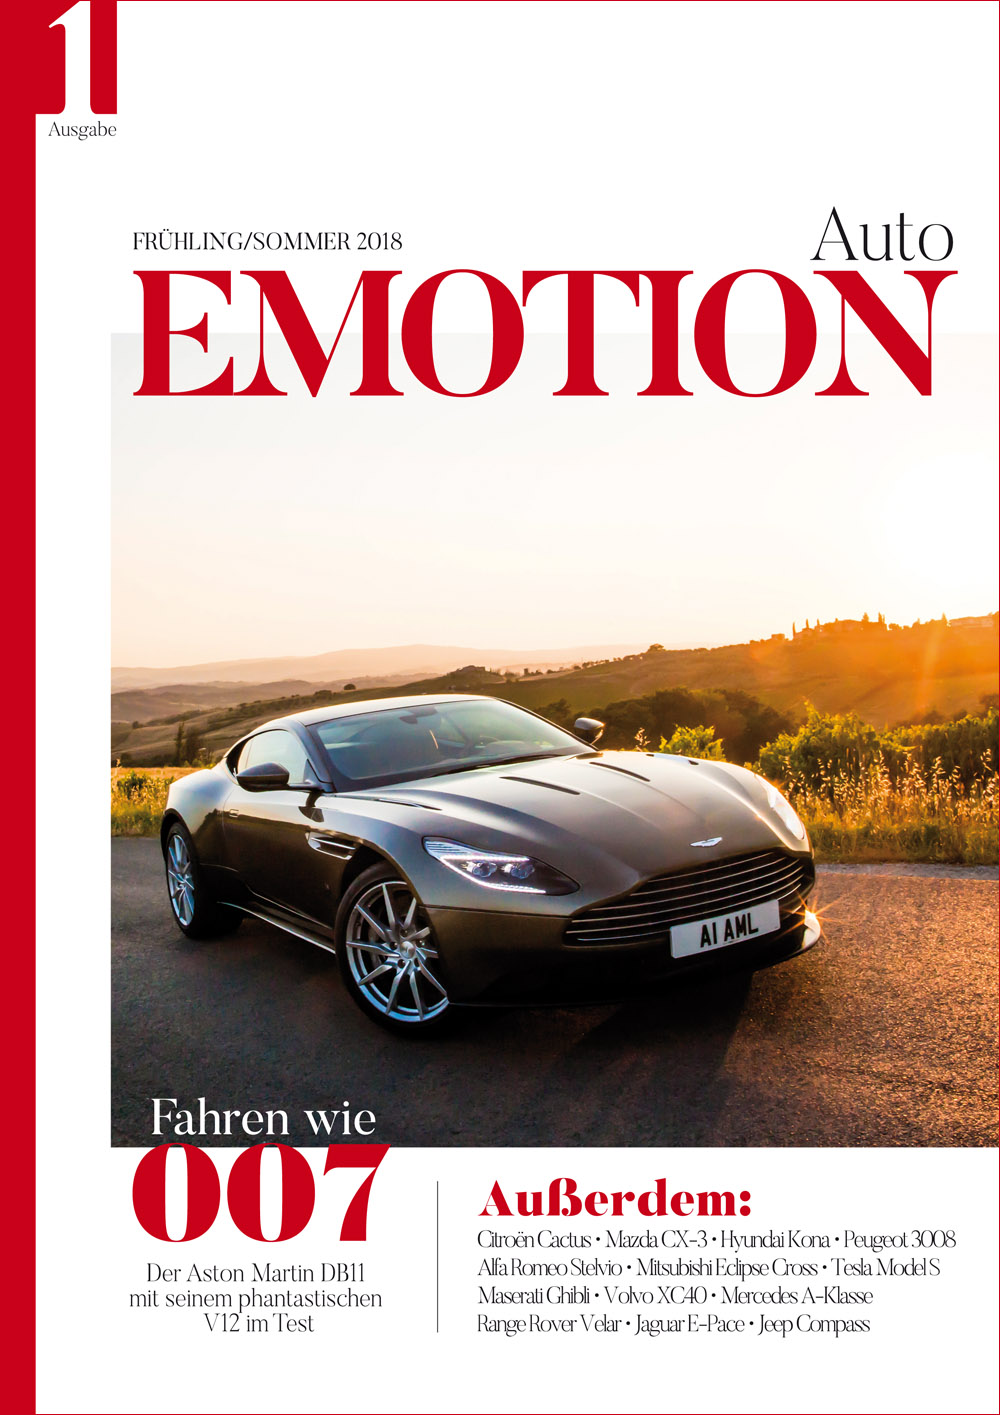 EmotionAuto1